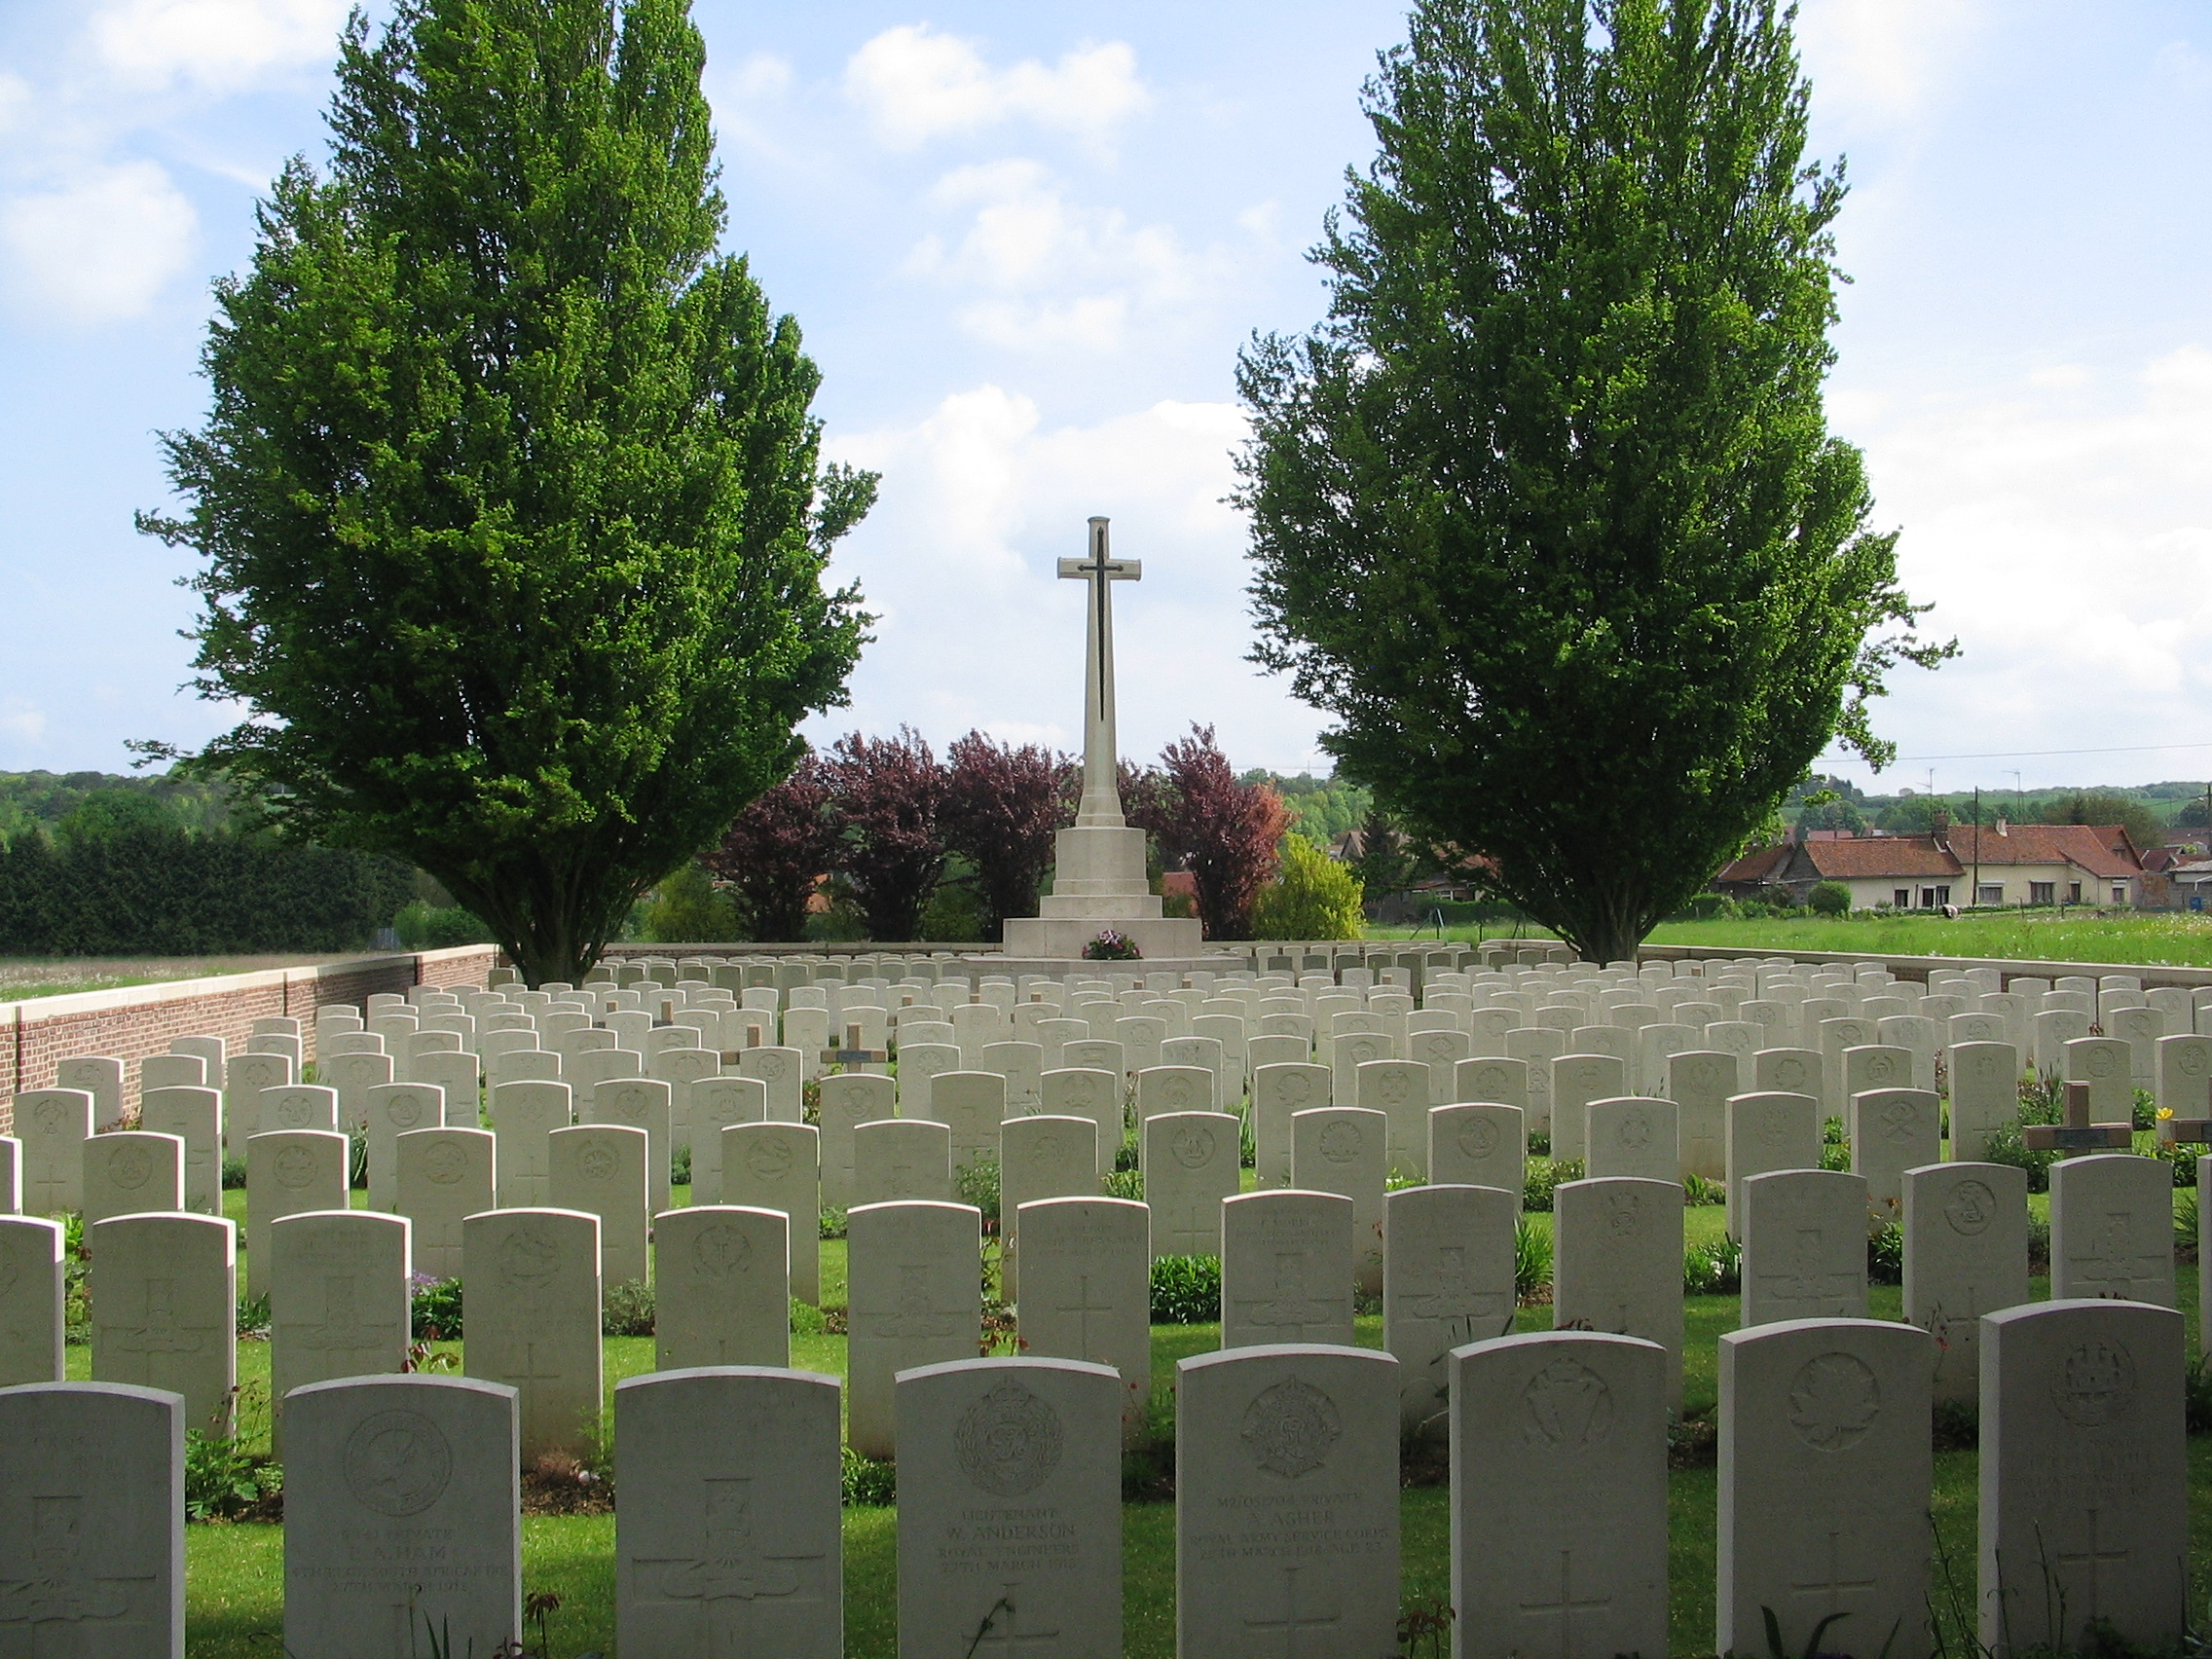 Namps-au-Val Cemetery